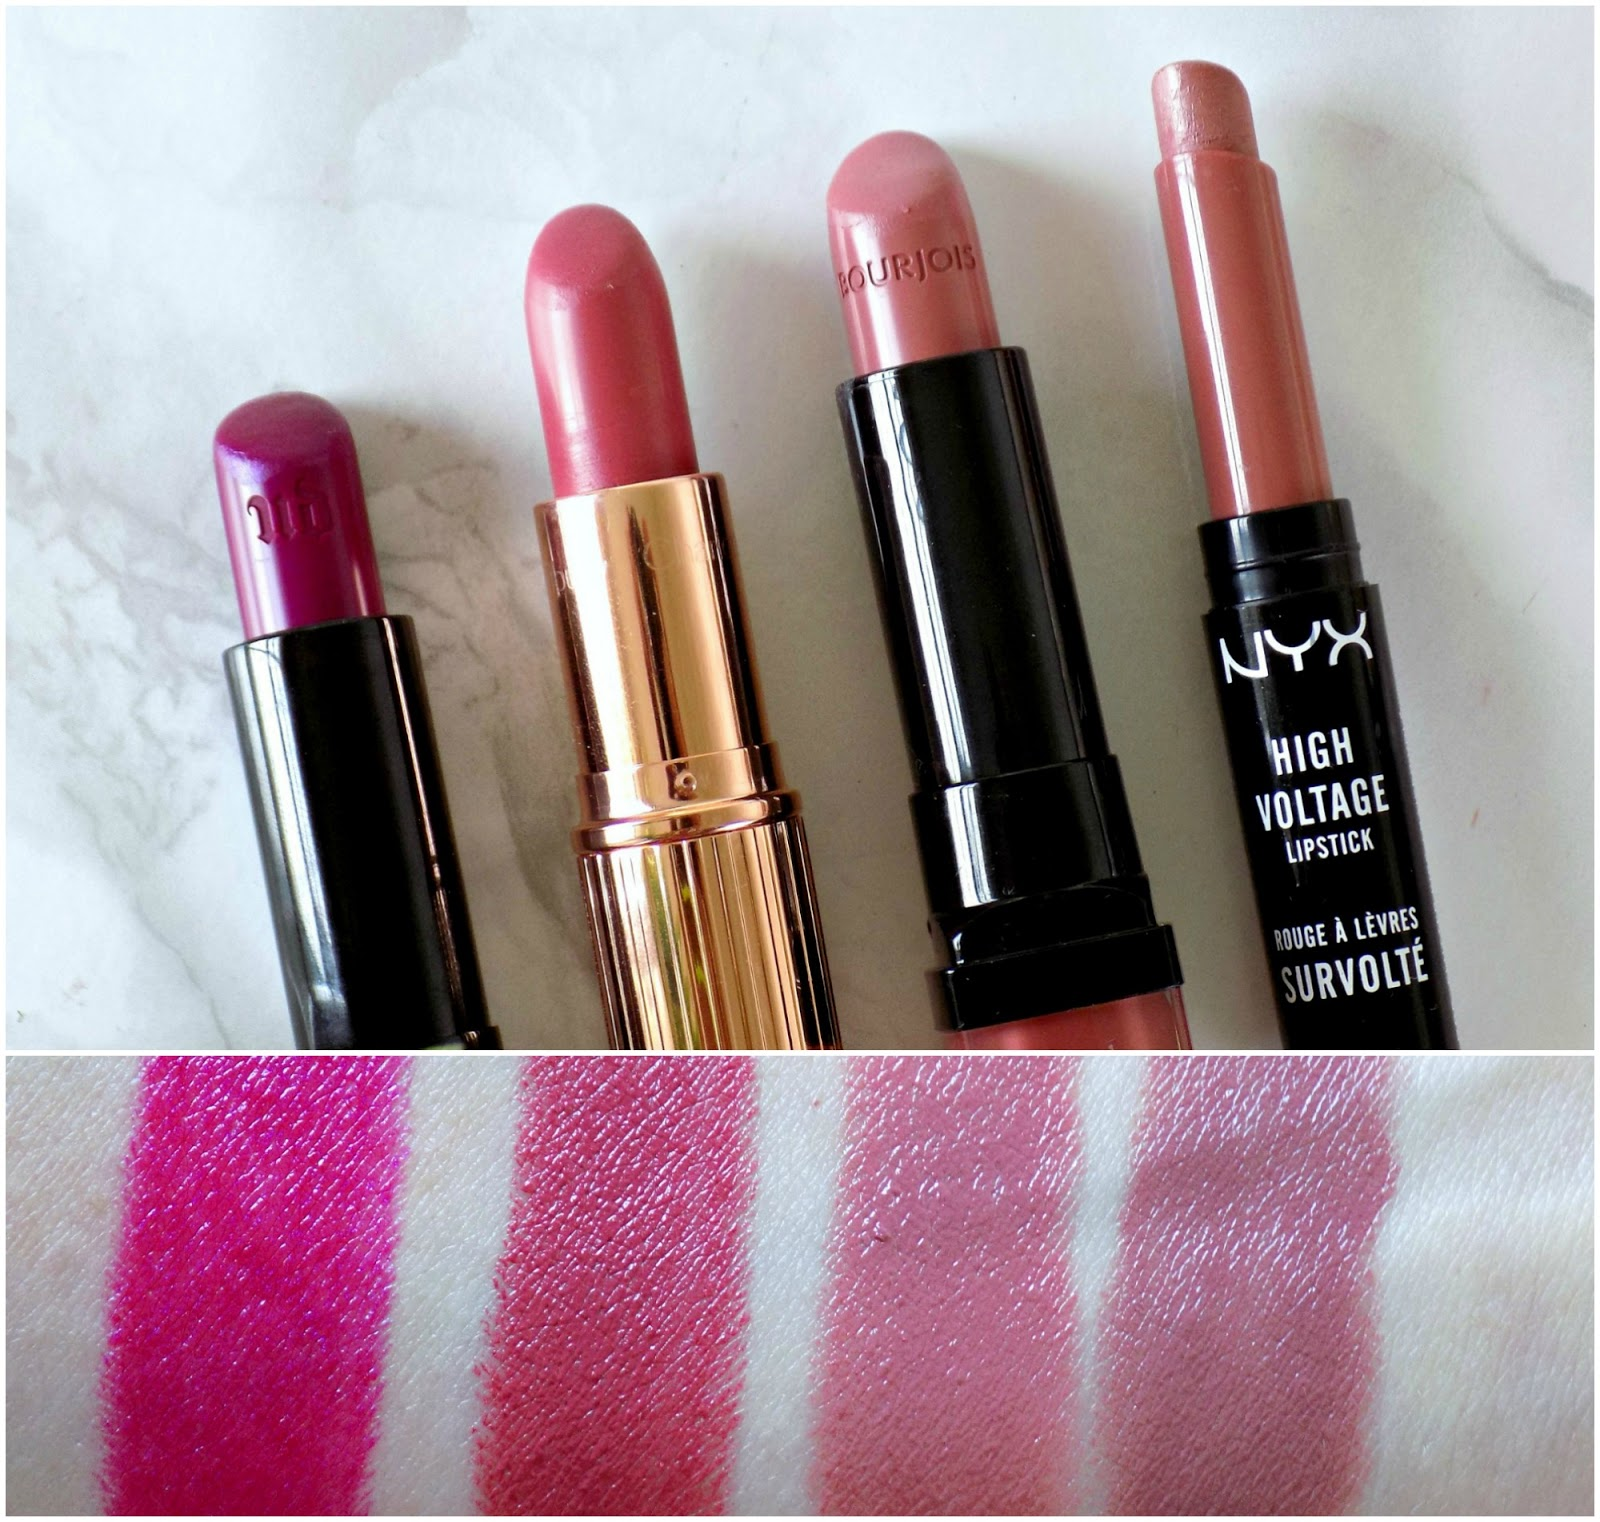 favourite lipsticks